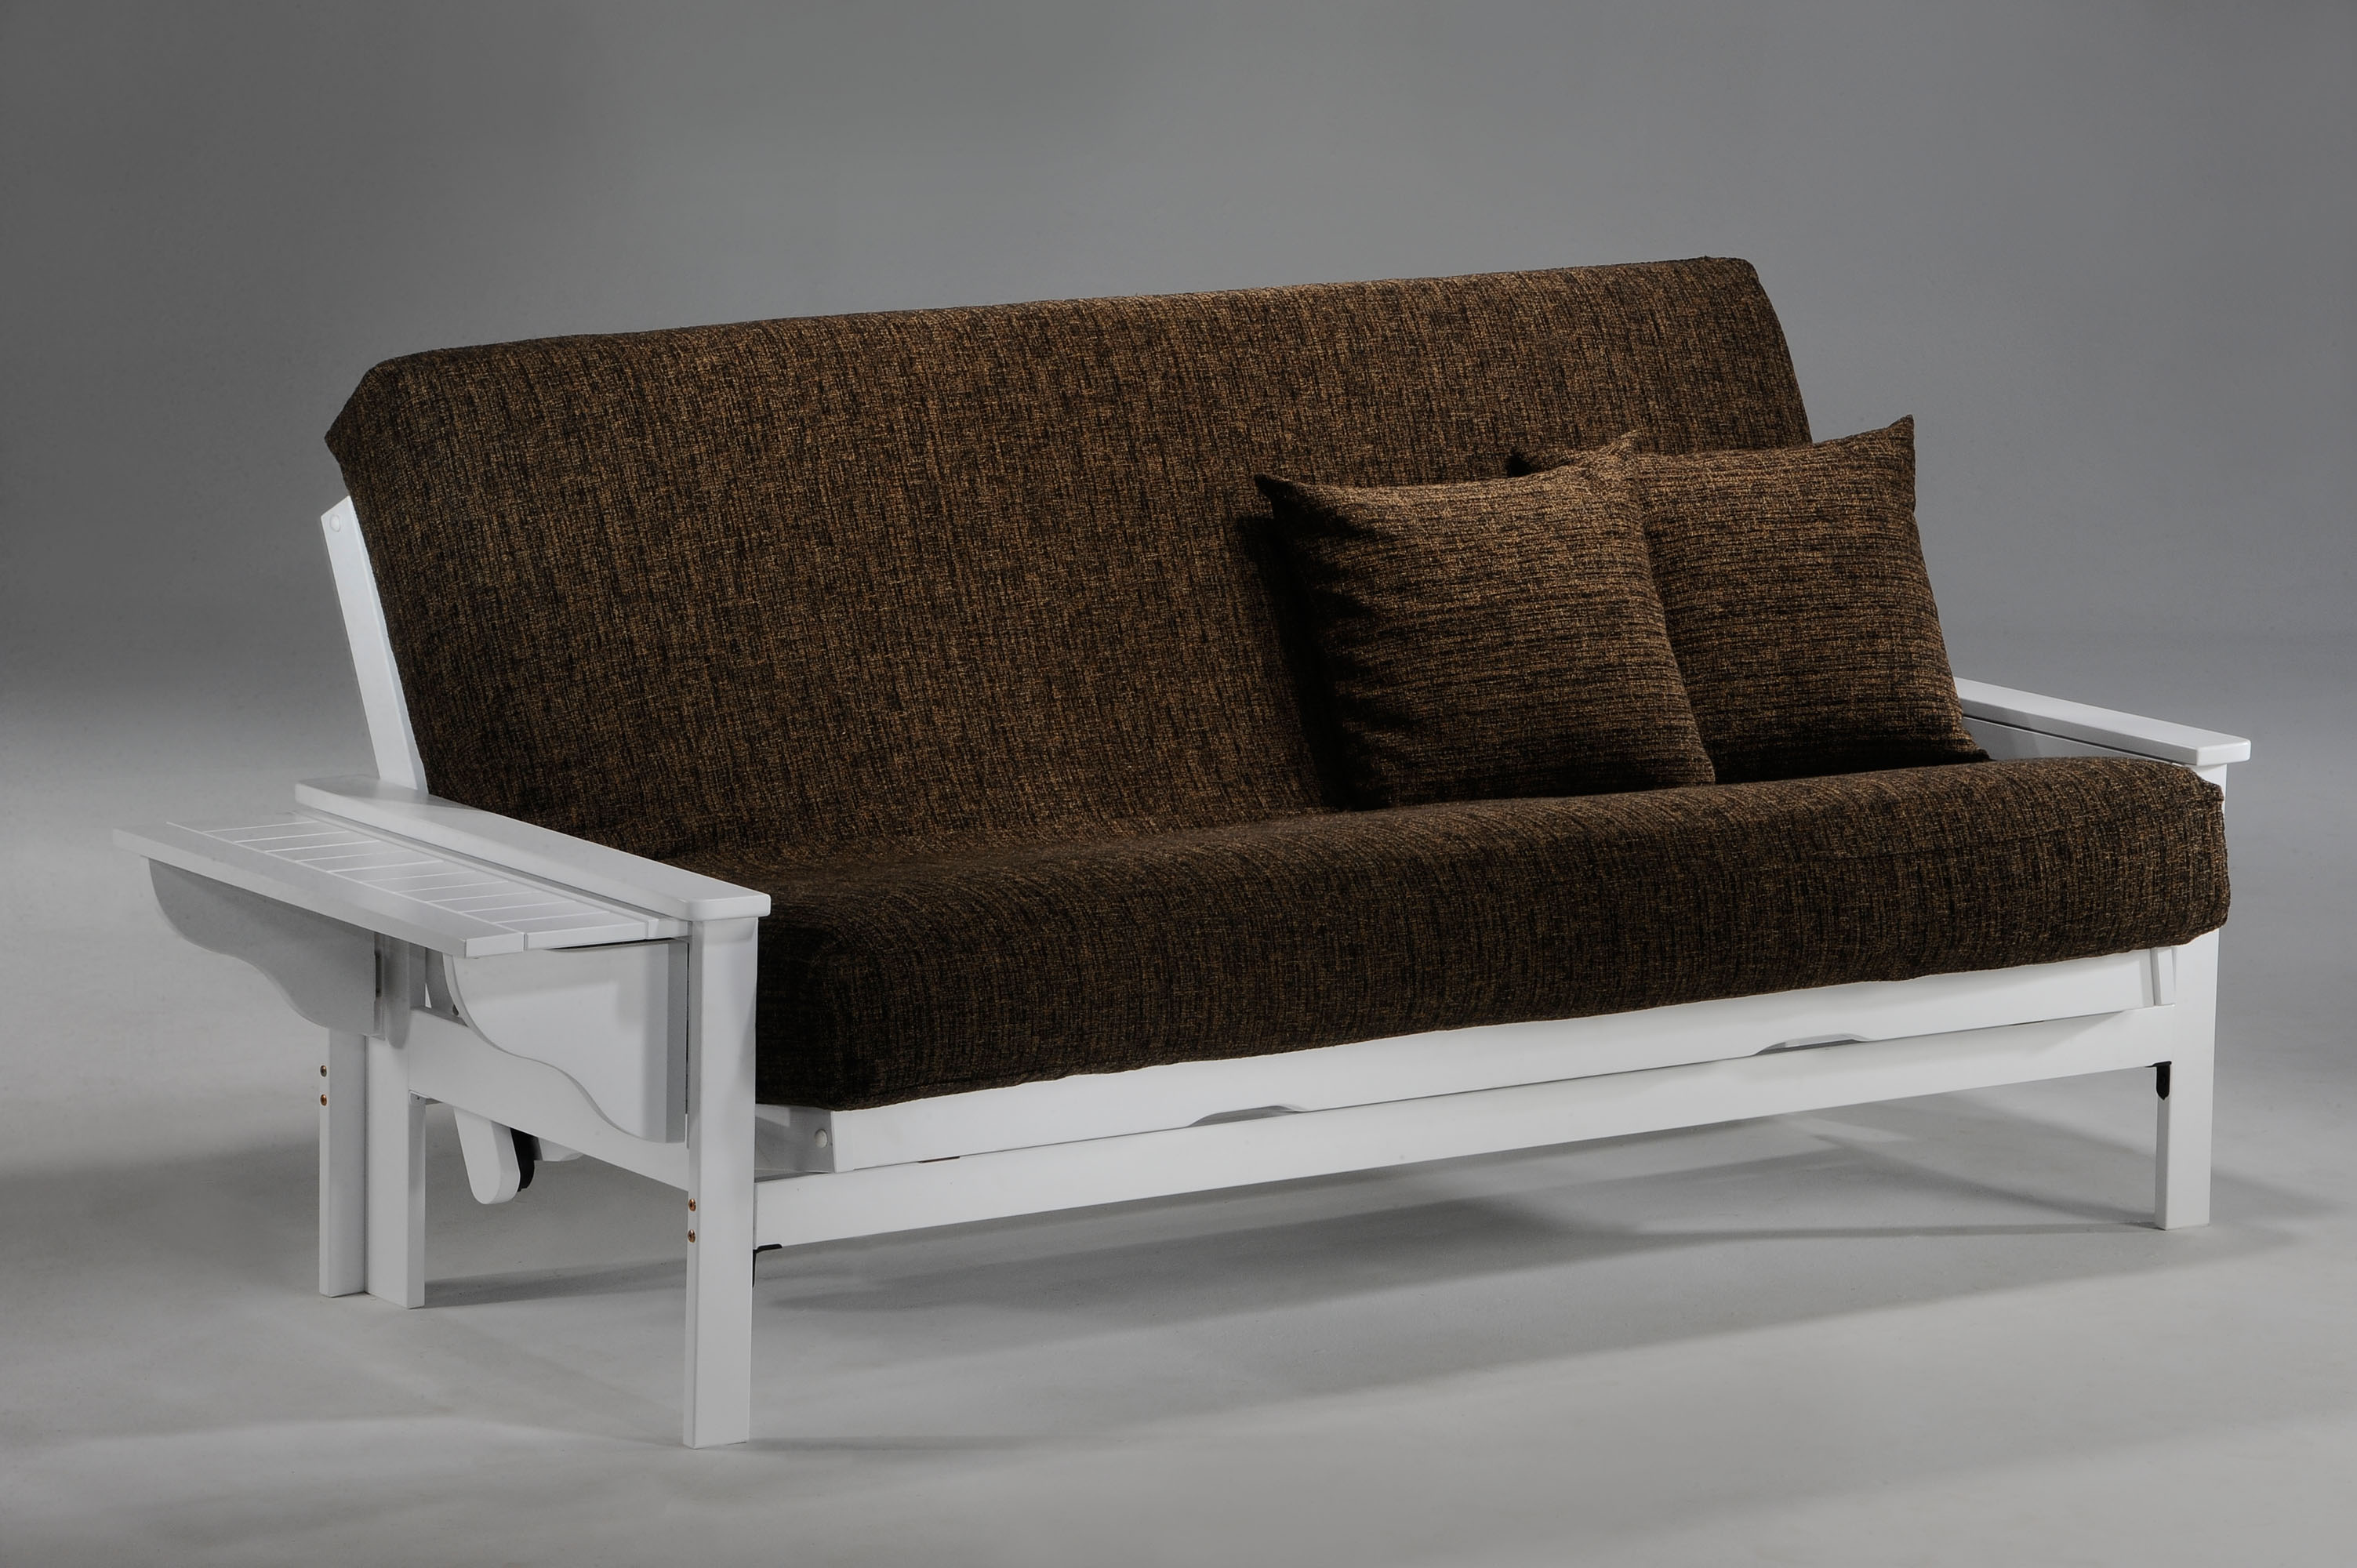 Inspirational Stock Of Futon Store Furniture Designs Furniture